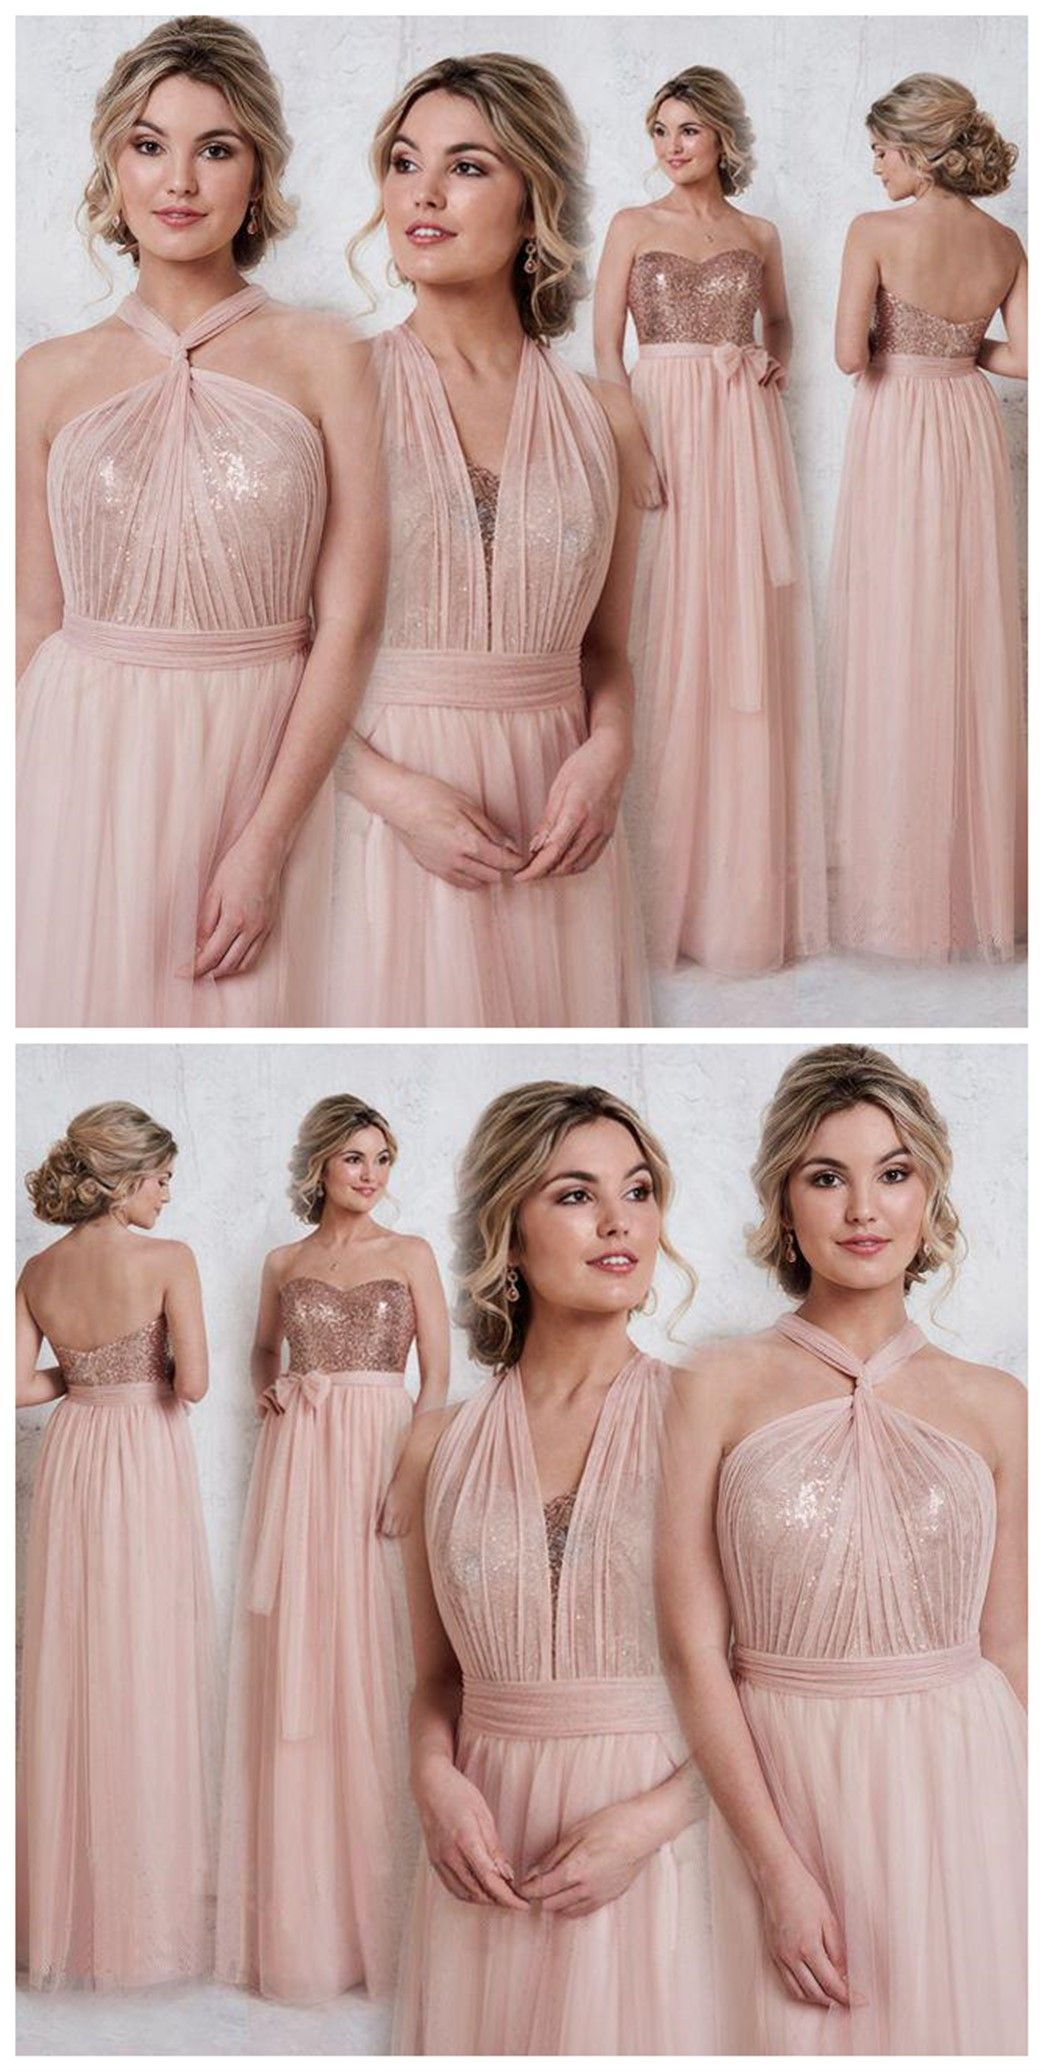 Rose gold sparkly mismatched sequin long bridesmaid dresses cheap rose gold sparkly mismatched sequin long bridesmaid dresses cheap unique custom long bridesmaid dresses affordable bridesmaid gowns bd104 ombrellifo Image collections